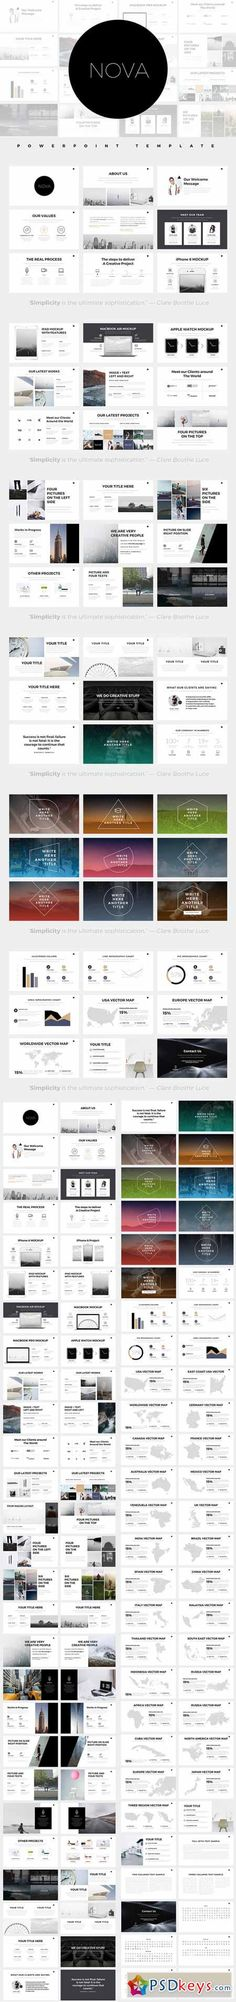 Informative PowerPoint Template Ppt presentation, Presentation - powerpoint brochure template